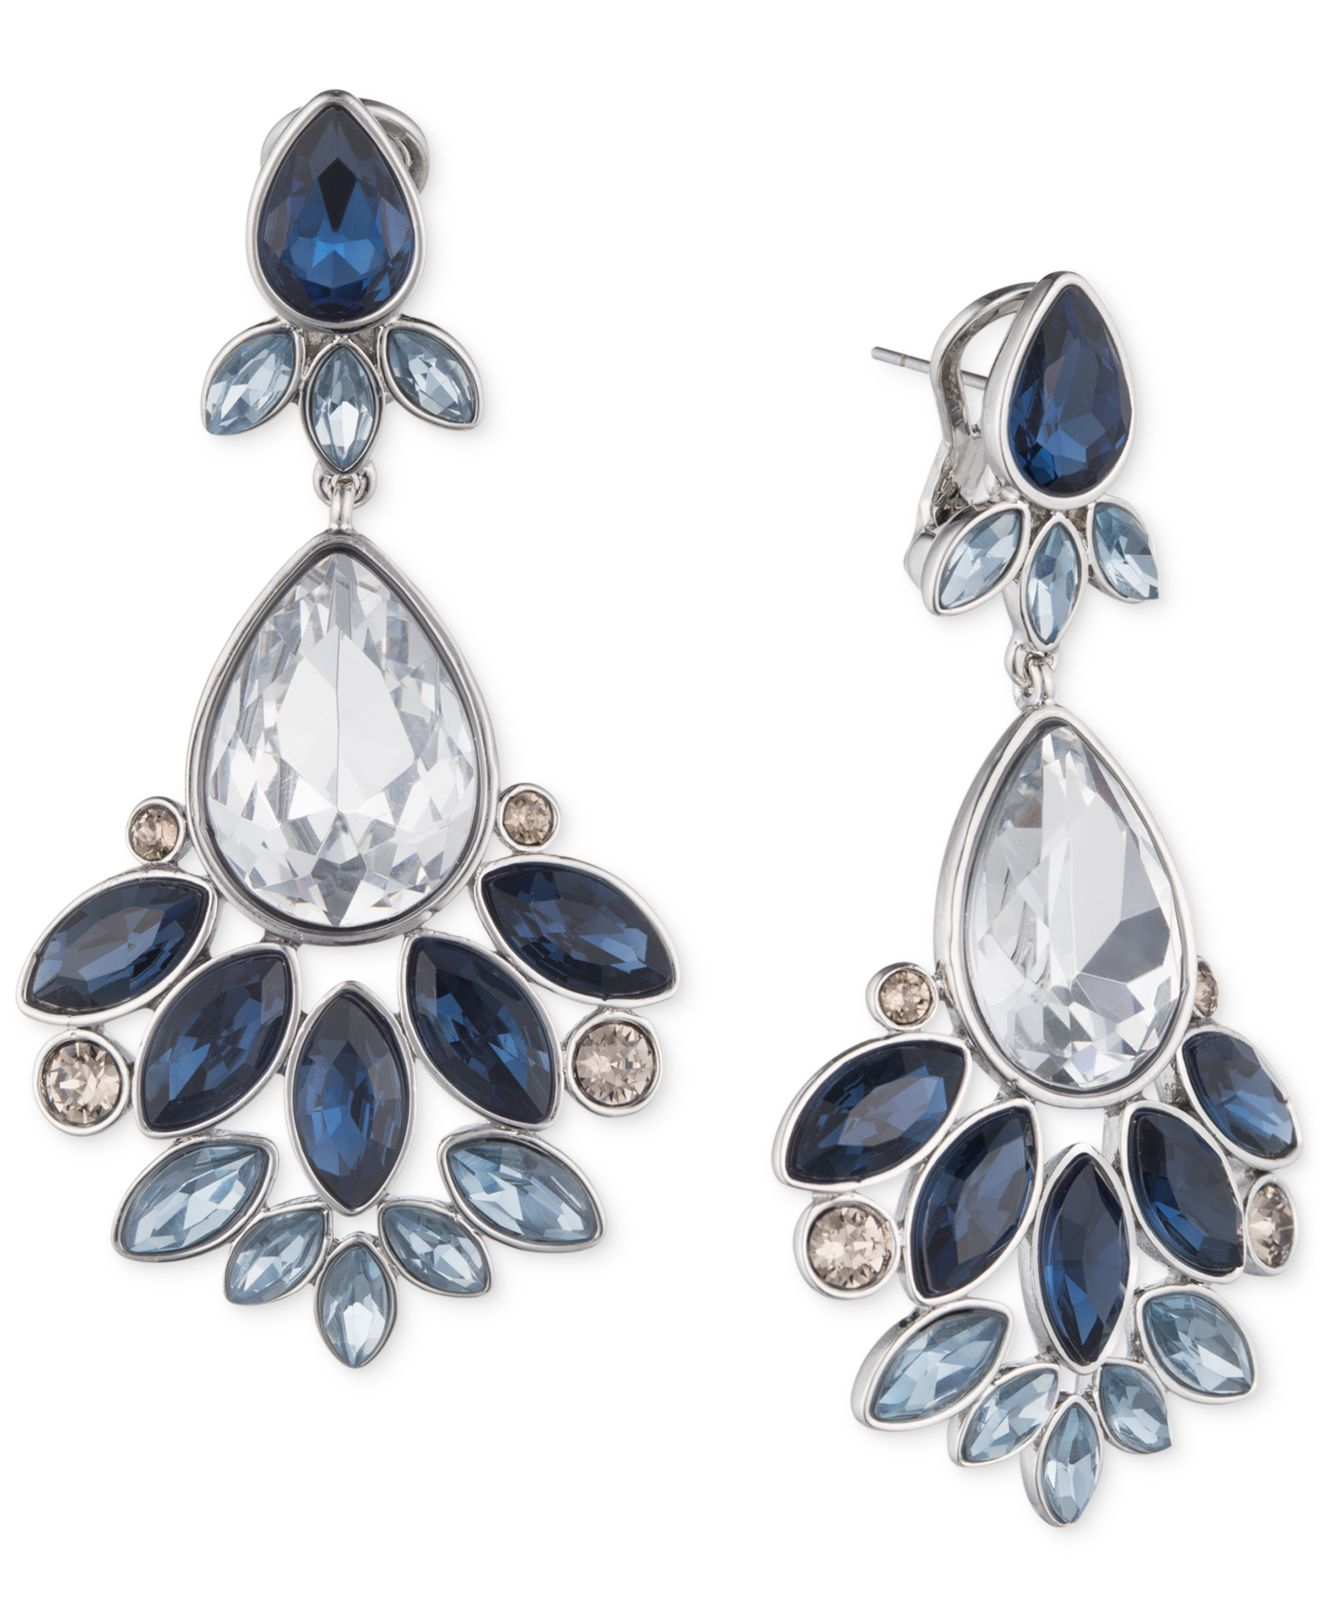 Red Givenchy Chandelier Earrings: Givenchy Silver-tone Crystal Blue Chandelier Earrings In